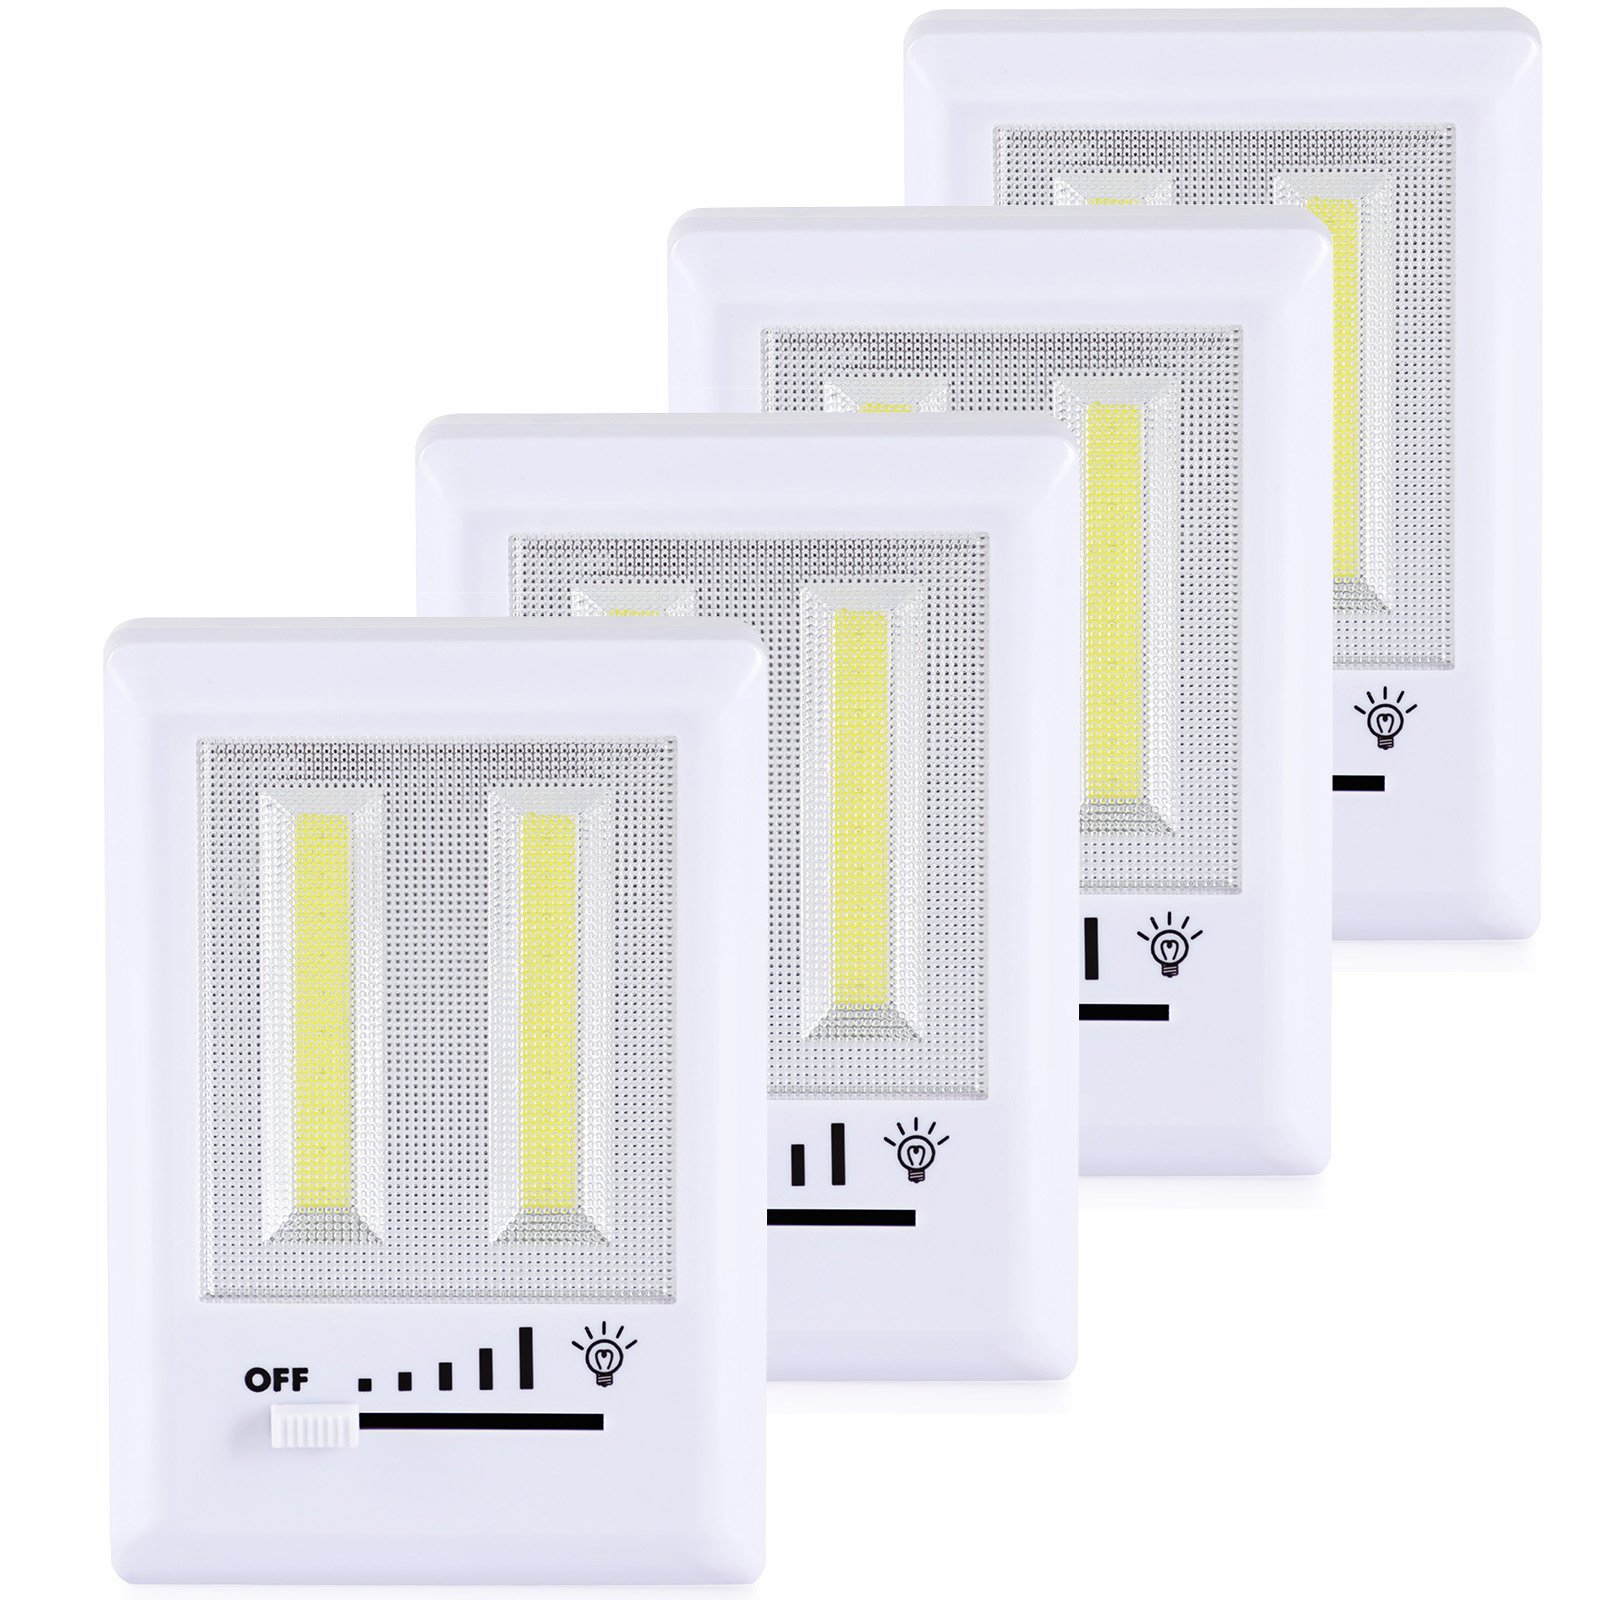 DEWENWILS COB LED Dimmer Switch Light, 200 Lumens Battery Operated Cordless Closet Switch Lights, Adjustable Brightness Reading Light for Kids, Emergency Working Lights, Stick Anywhere Light,4 Pack